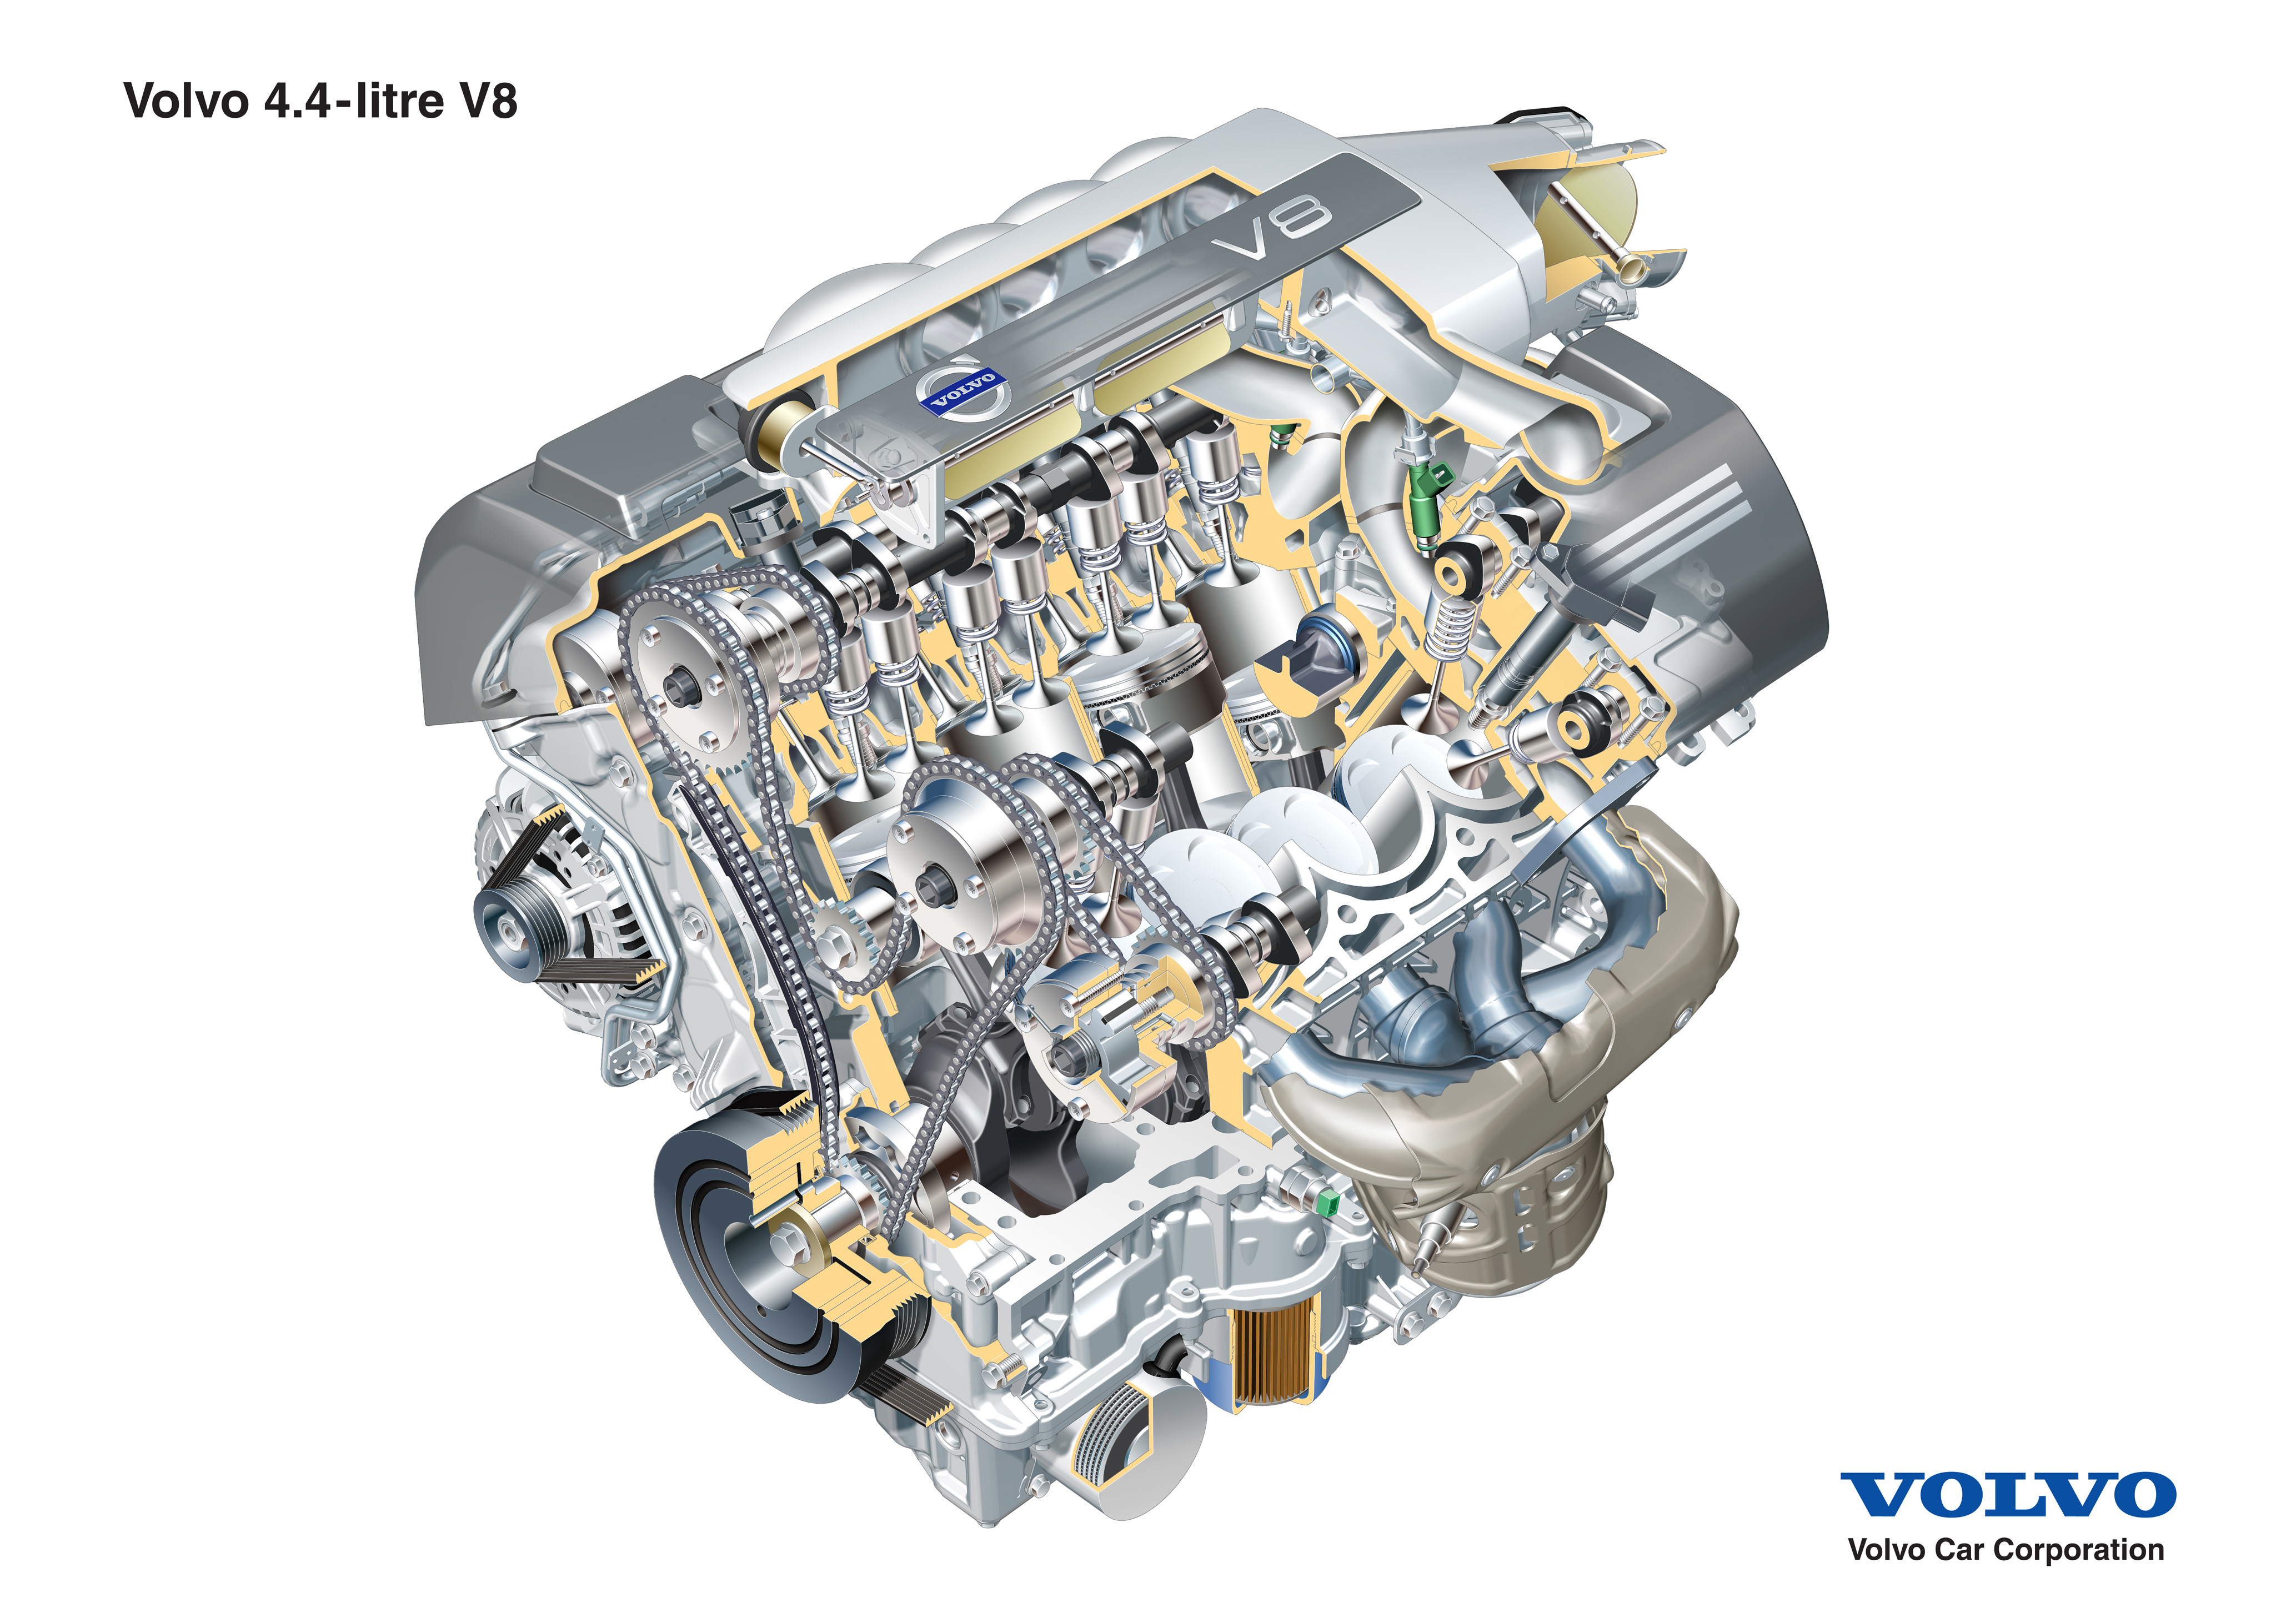 Volvo    XC90 gets the stateoftheart V8 powertrain for 2005